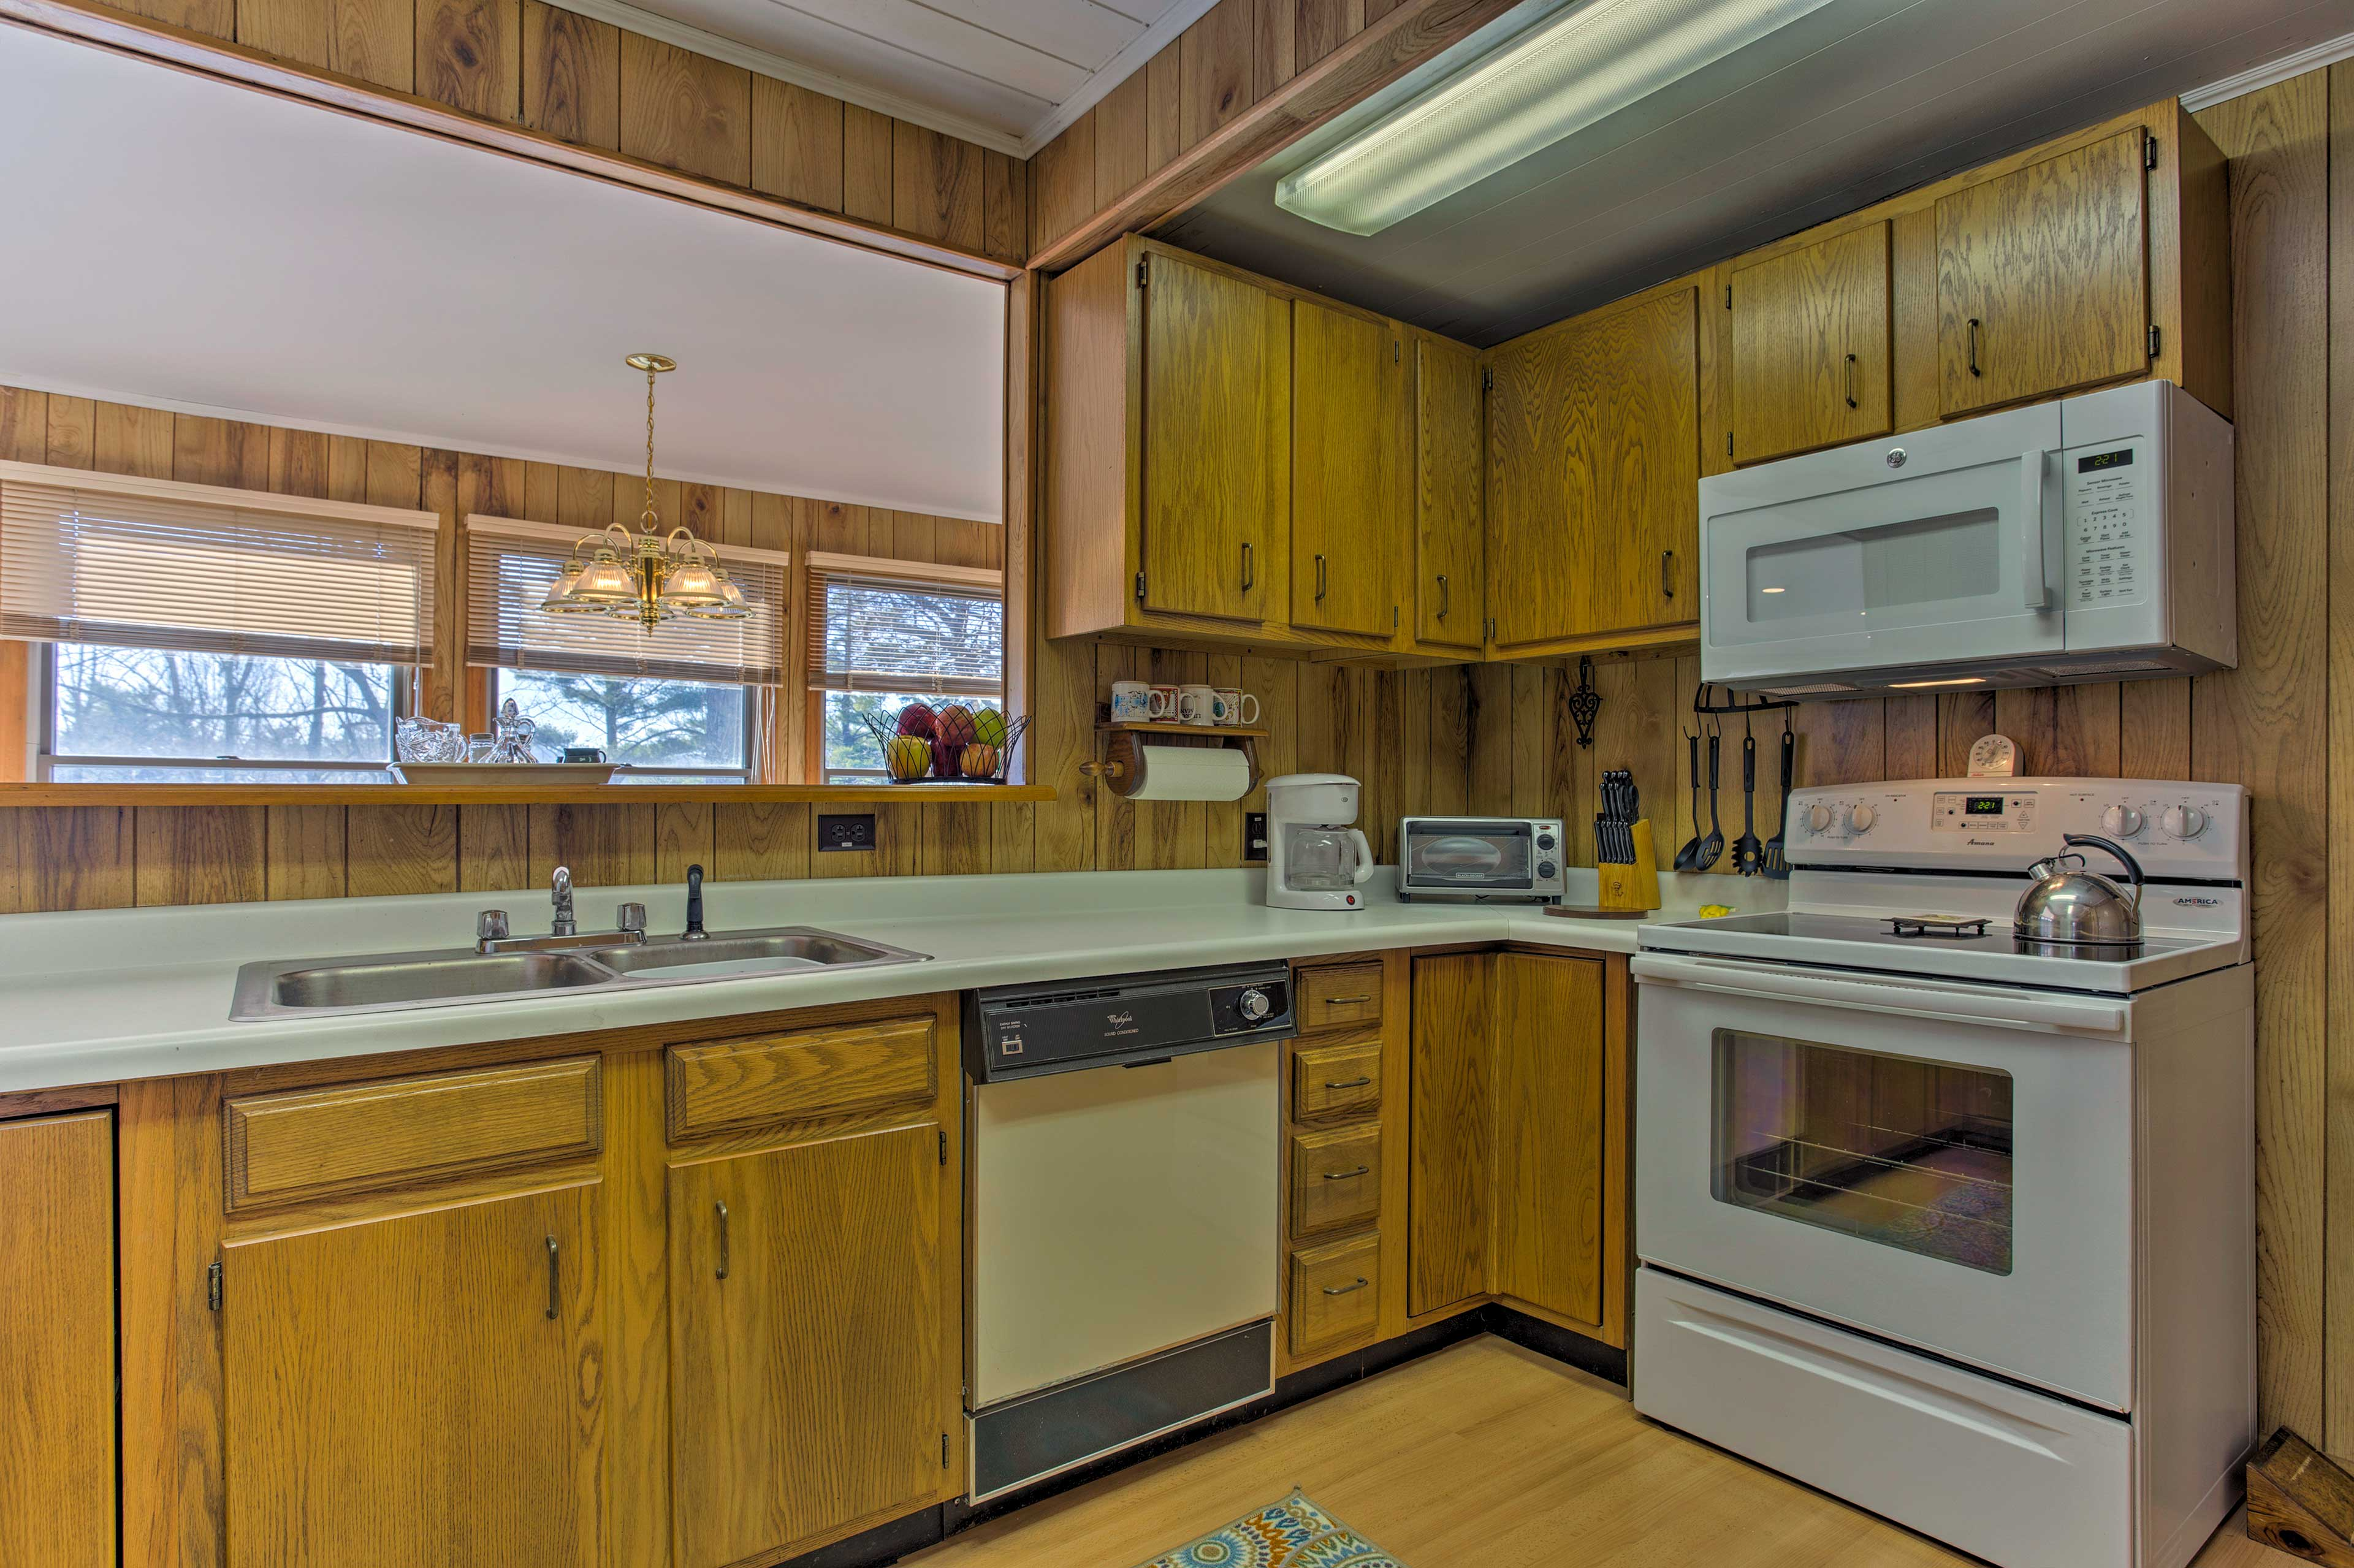 The kitchen is fully equipped with updated appliances and ample counterspace.